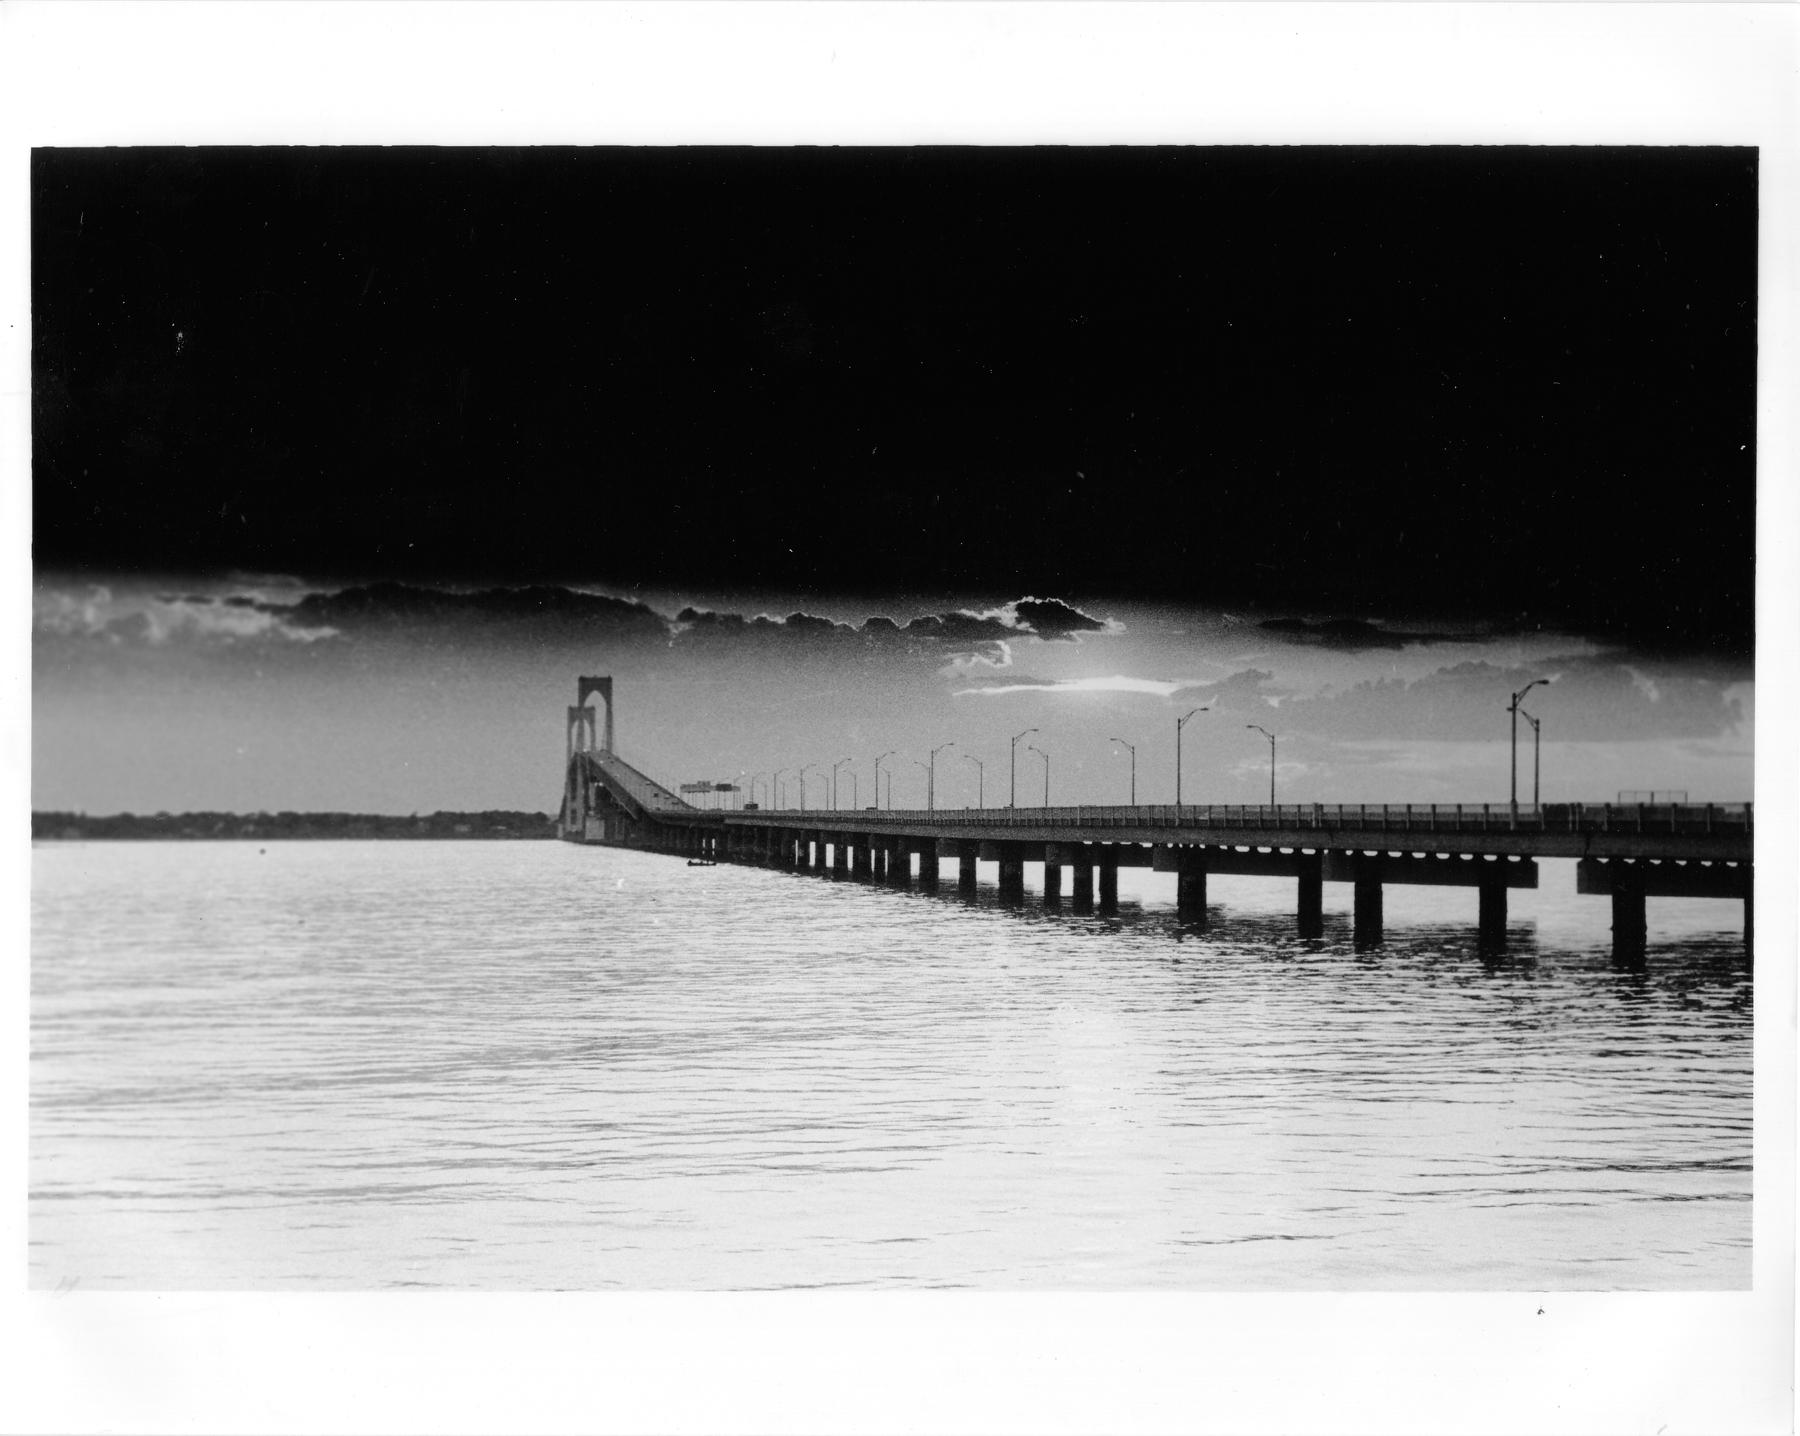 Newport Bridge. by Vestiphobia